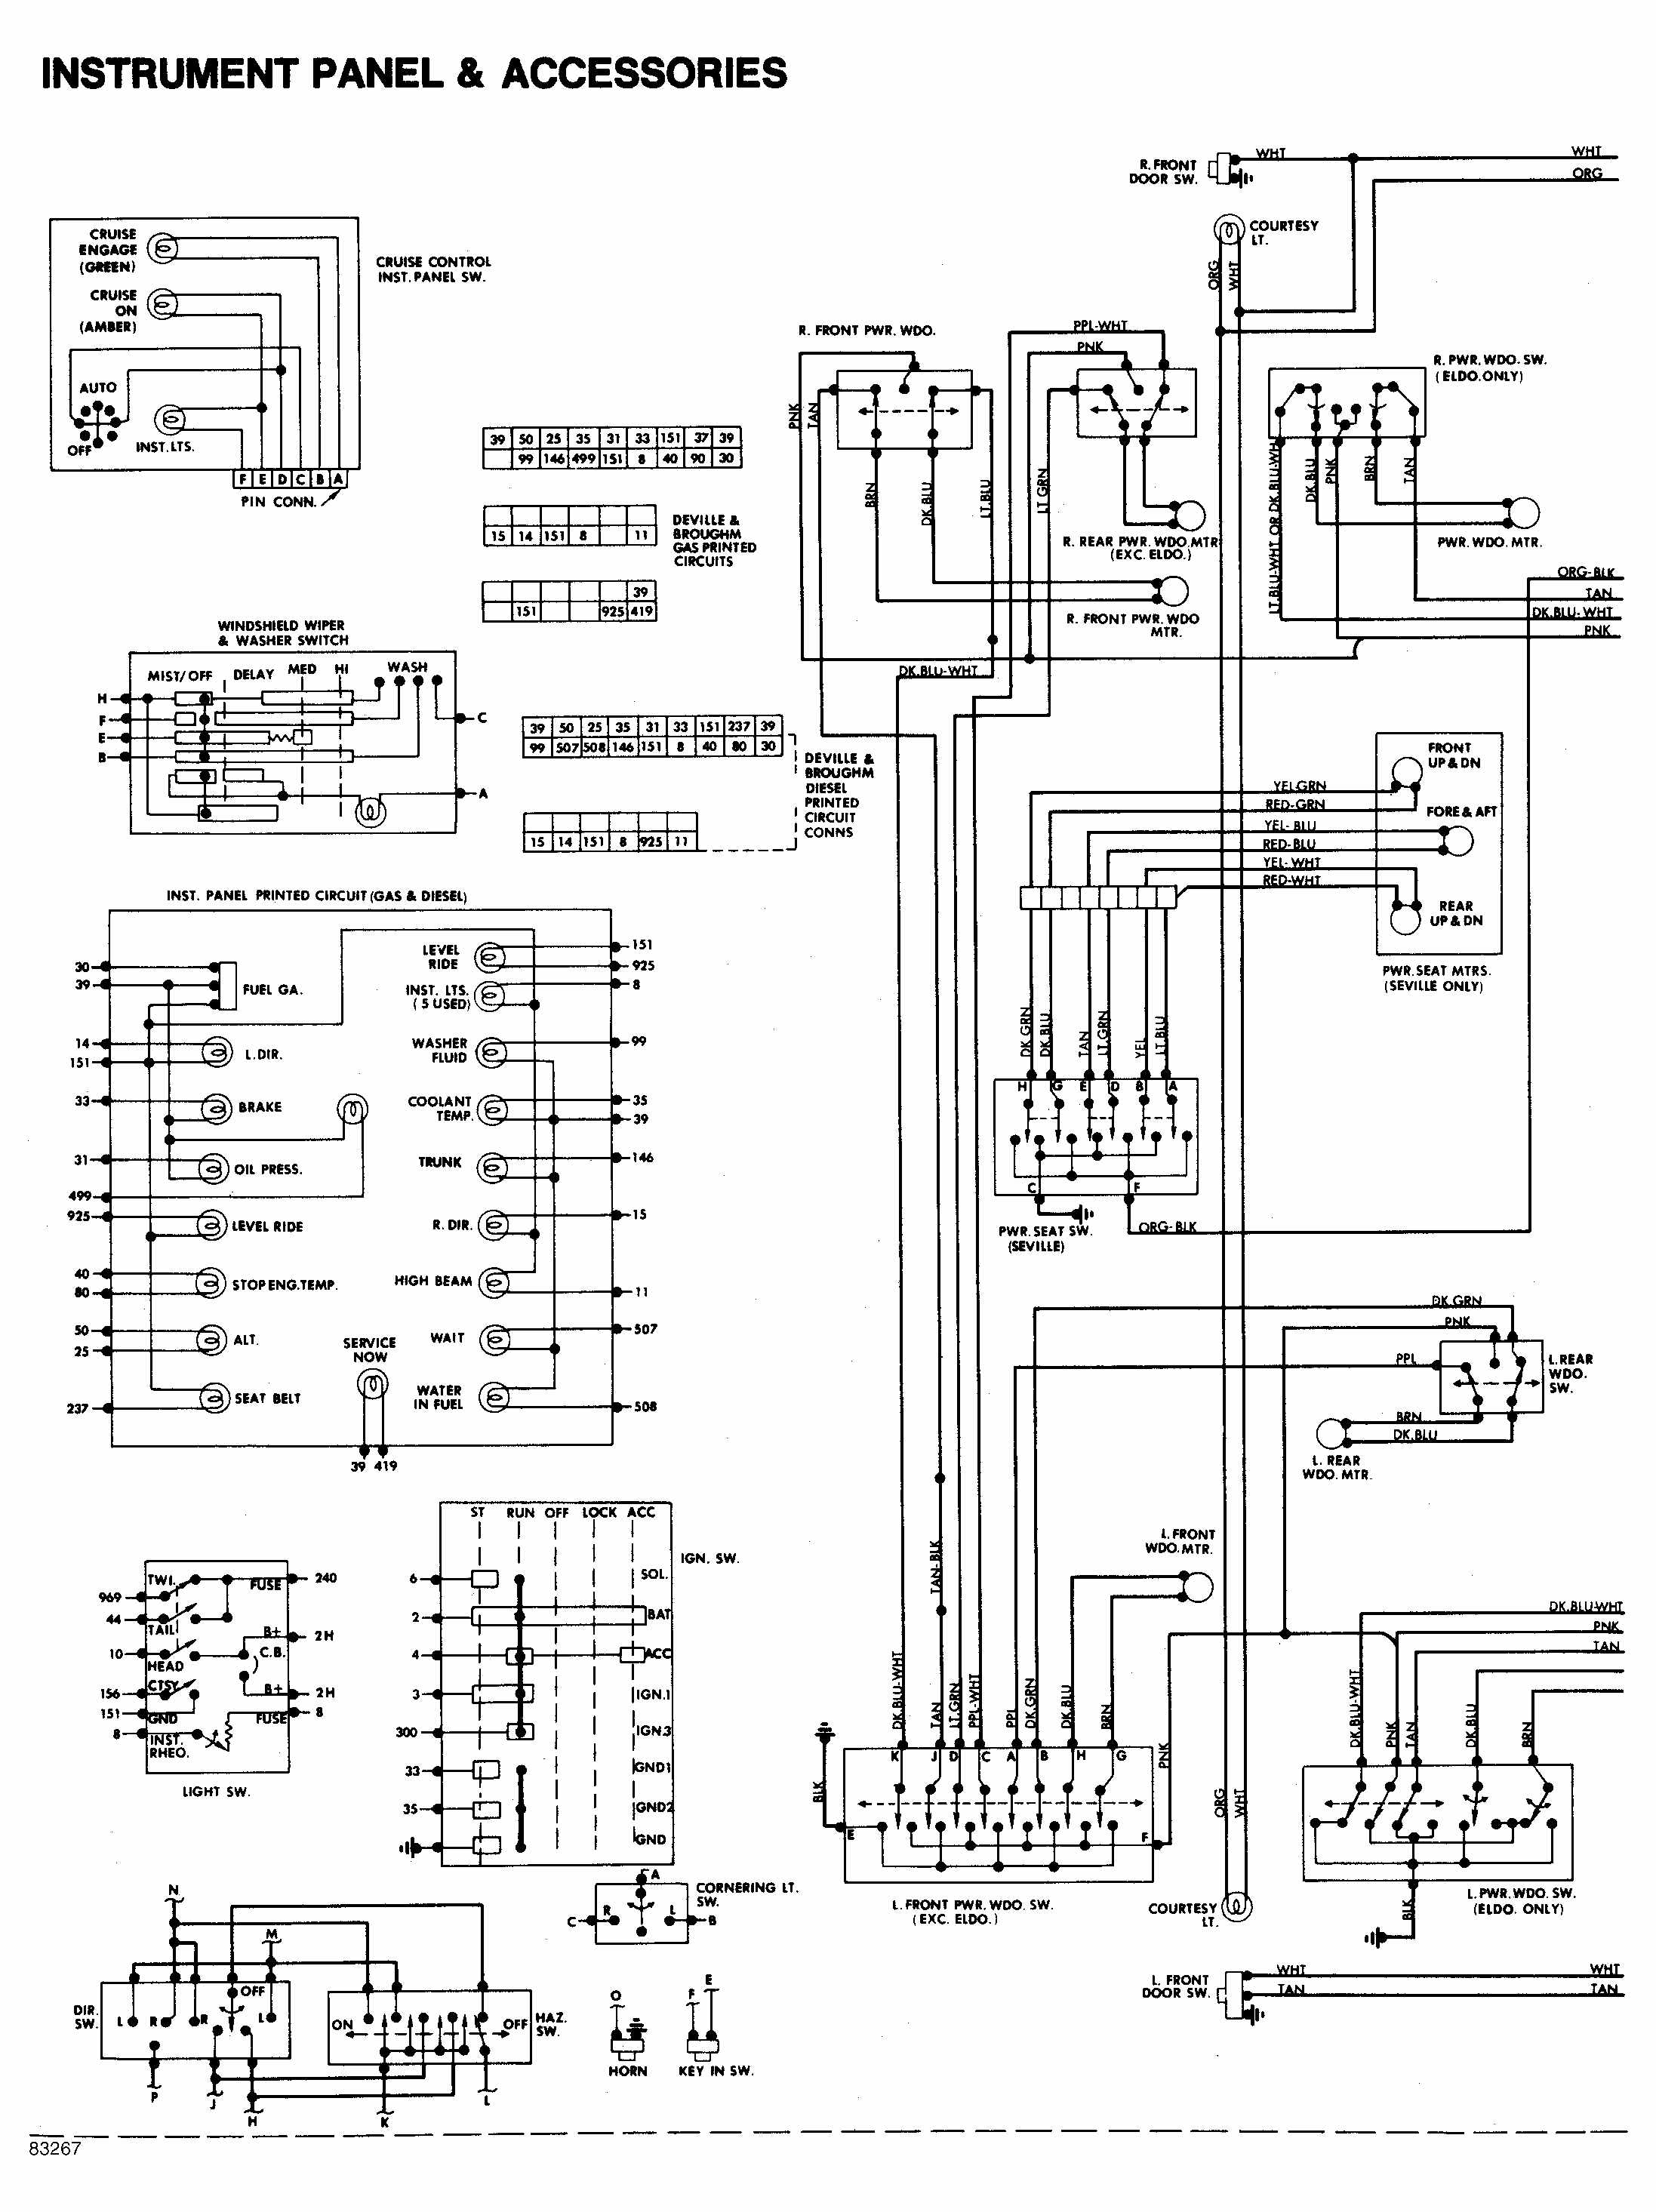 Cadillac wiring harness bpt jenouson uk  diagram rh also solsolder